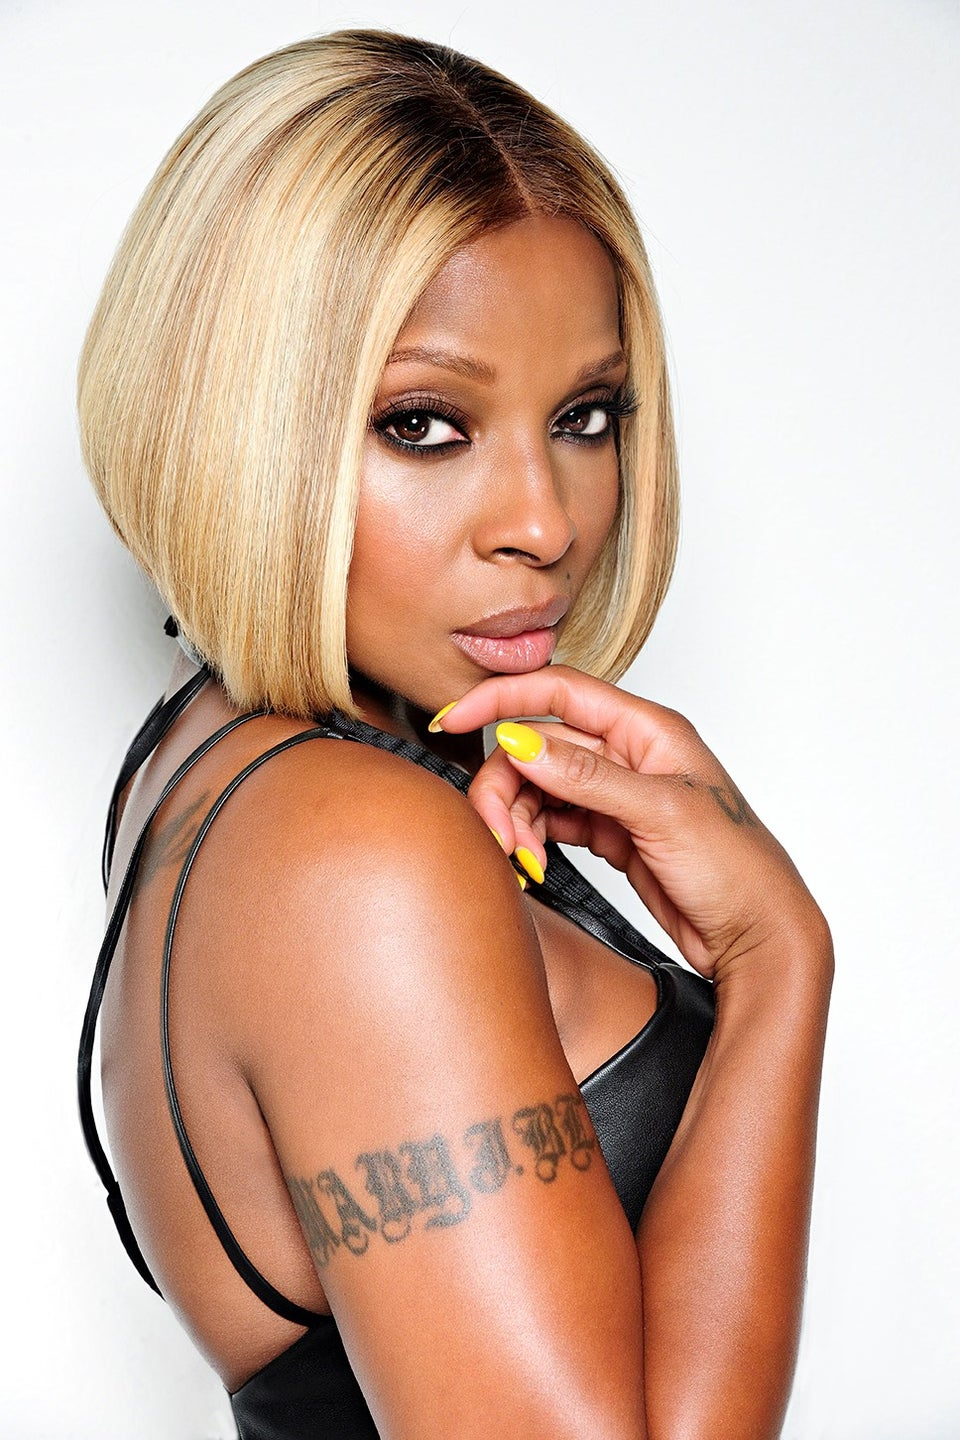 Mary J. Blige Alleges Estranged Husband Used Their Money For Vacations With His Girlfriend